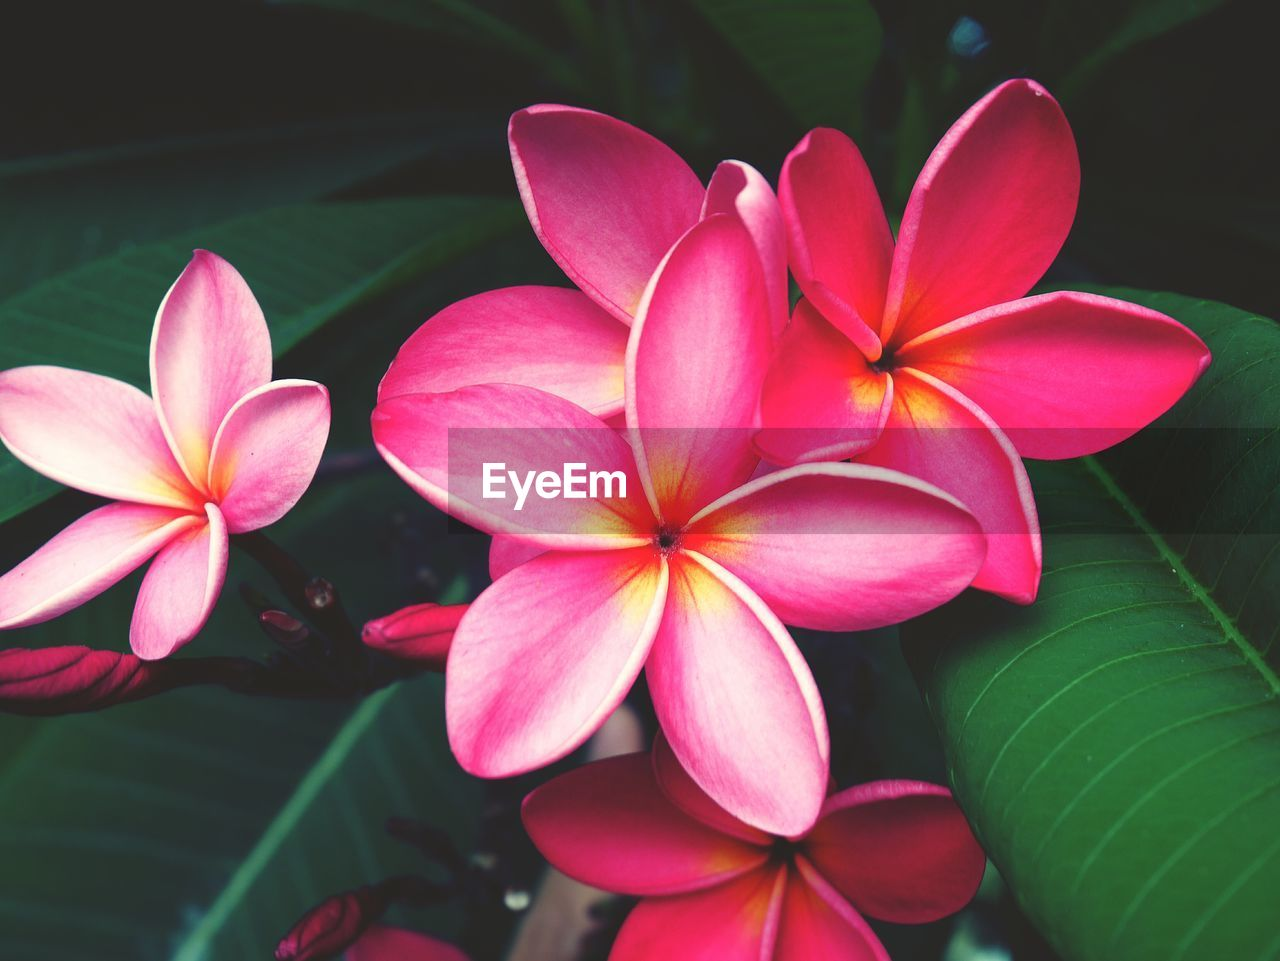 petal, flower, beauty in nature, fragility, flower head, growth, pink color, nature, periwinkle, blooming, close-up, day, freshness, frangipani, plant, no people, outdoors